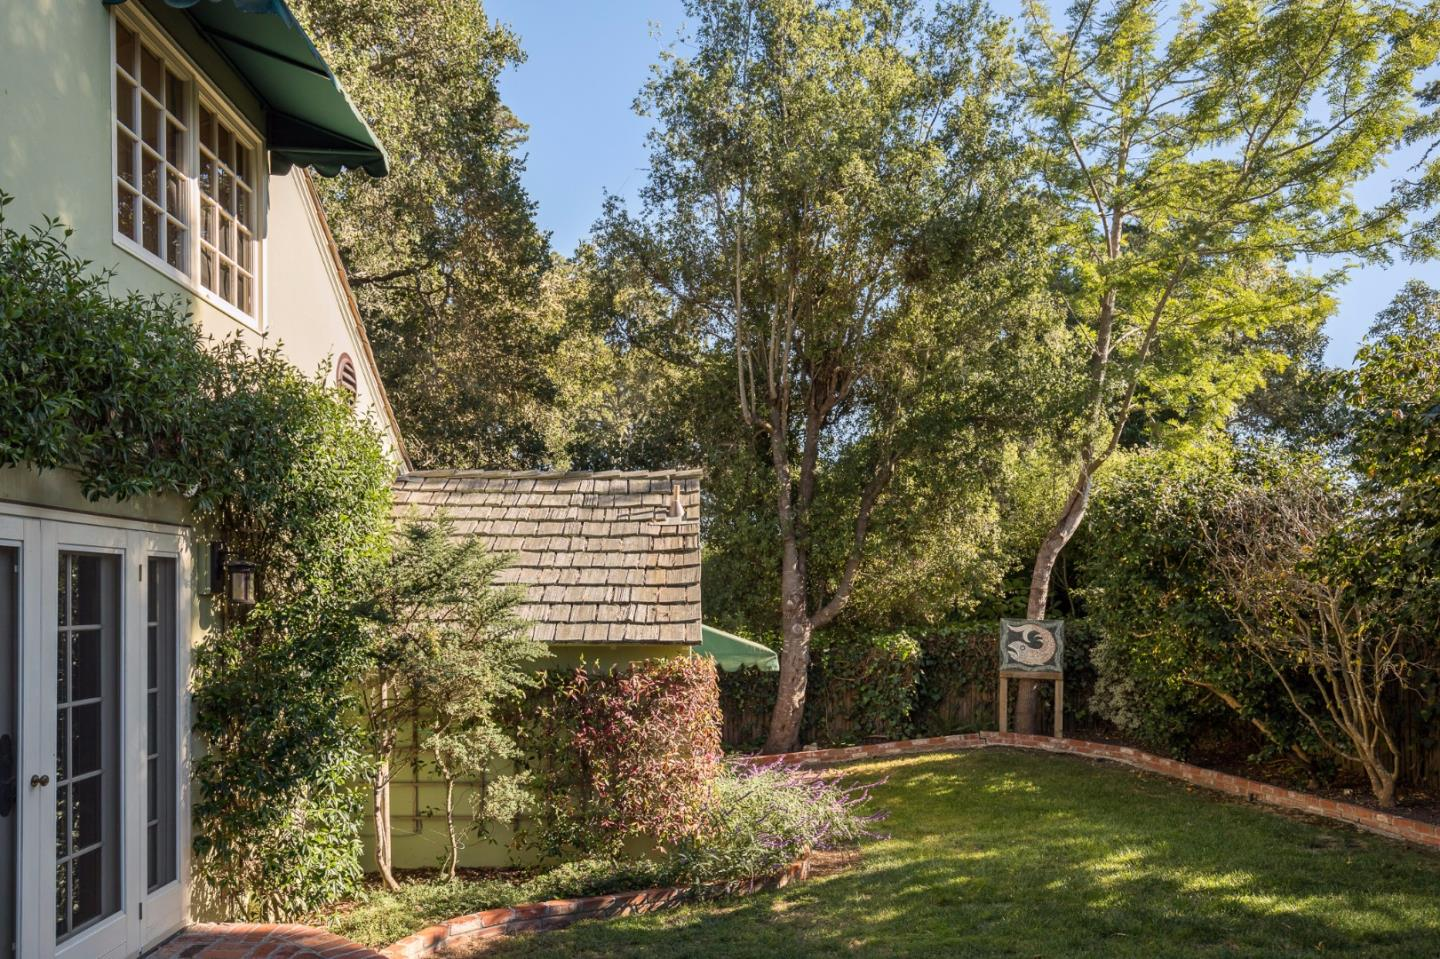 Additional photo for property listing at 24310 San Pedro Lane 24310 San Pedro Lane Carmel, California 93923 United States